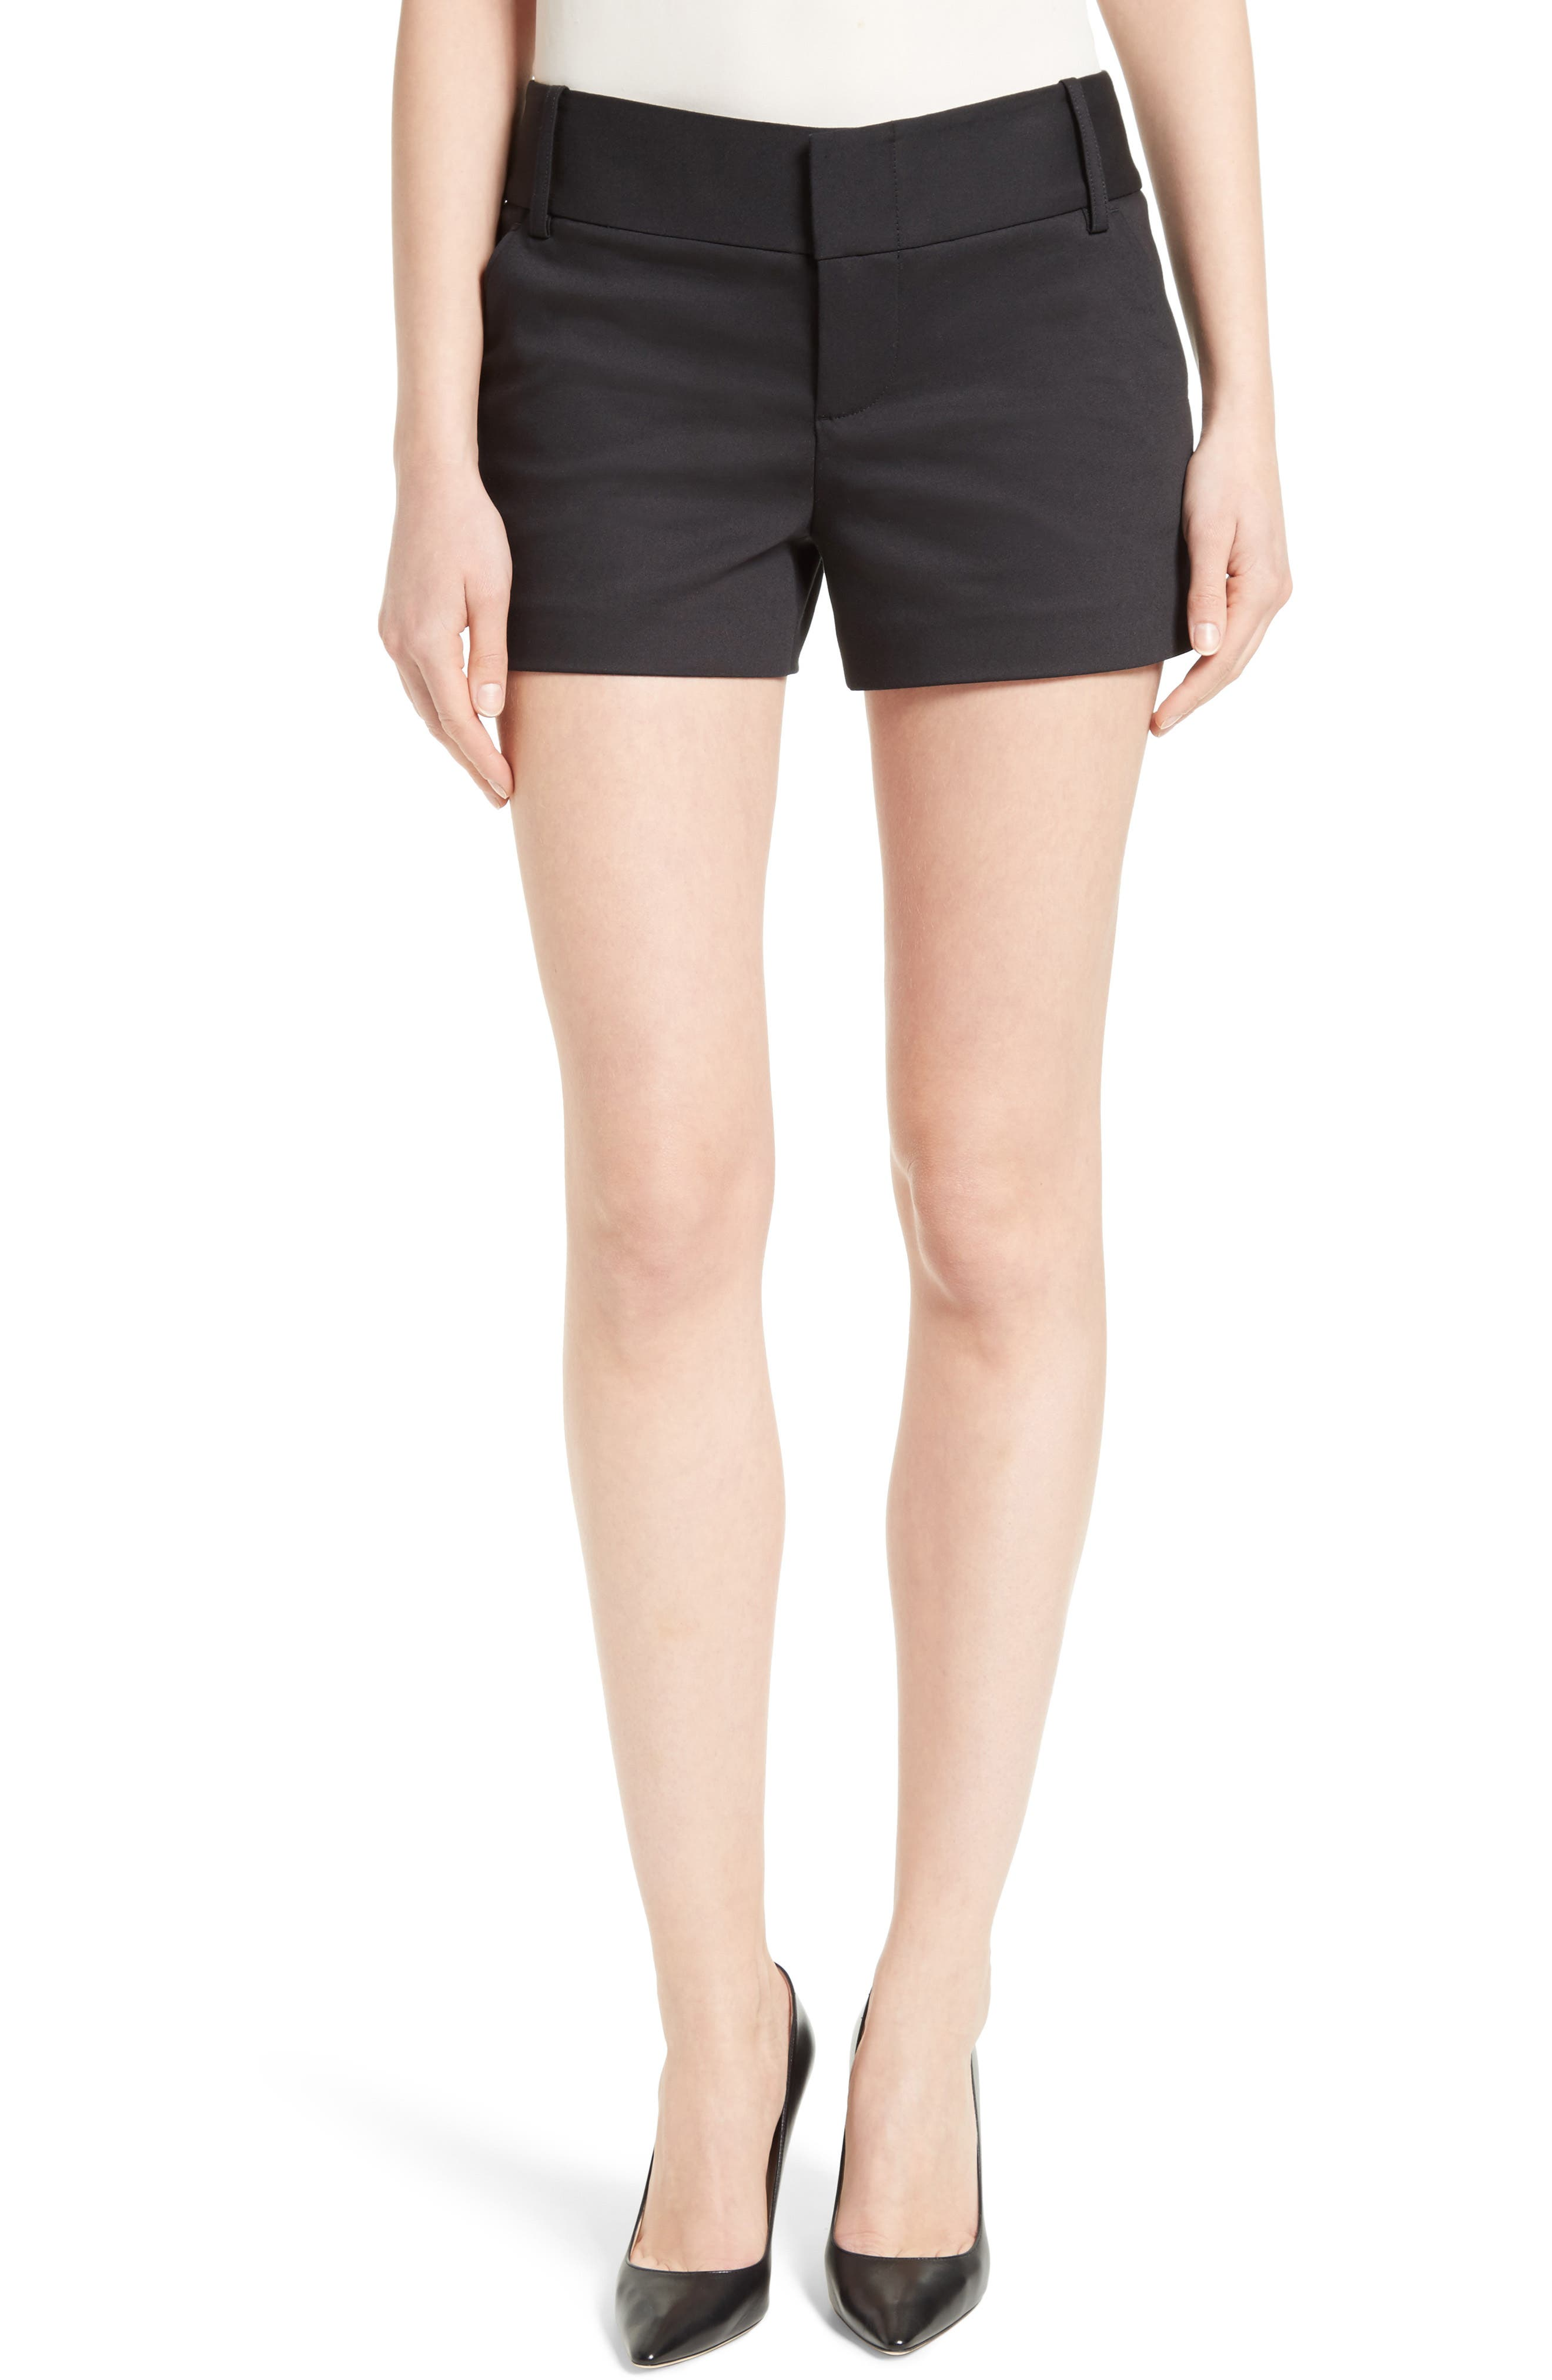 Cady Cotton Blend Shorts,                         Main,                         color, 001